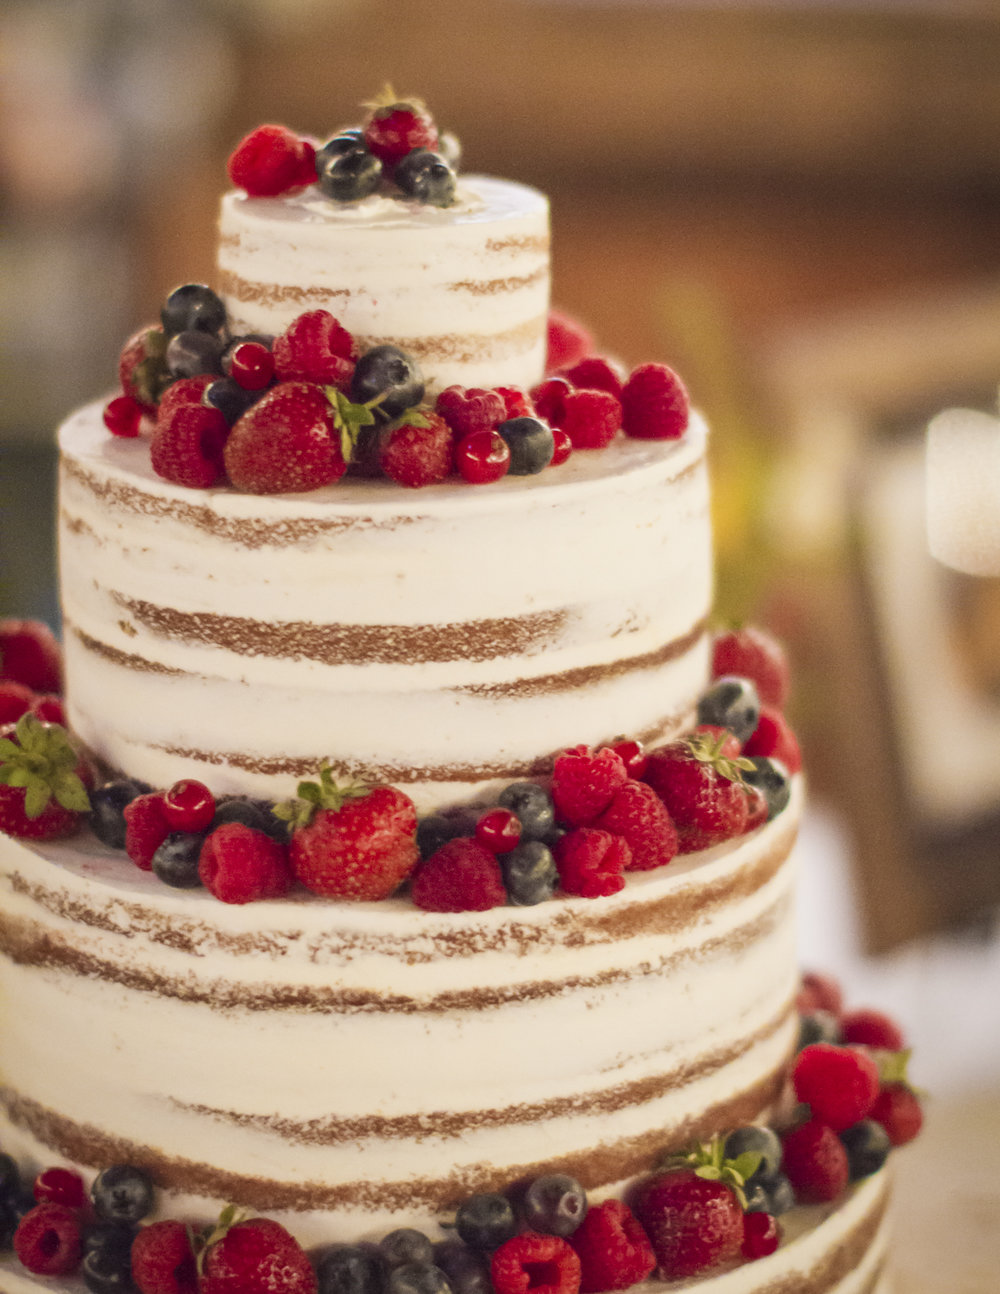 The naked cake with fresh berries.